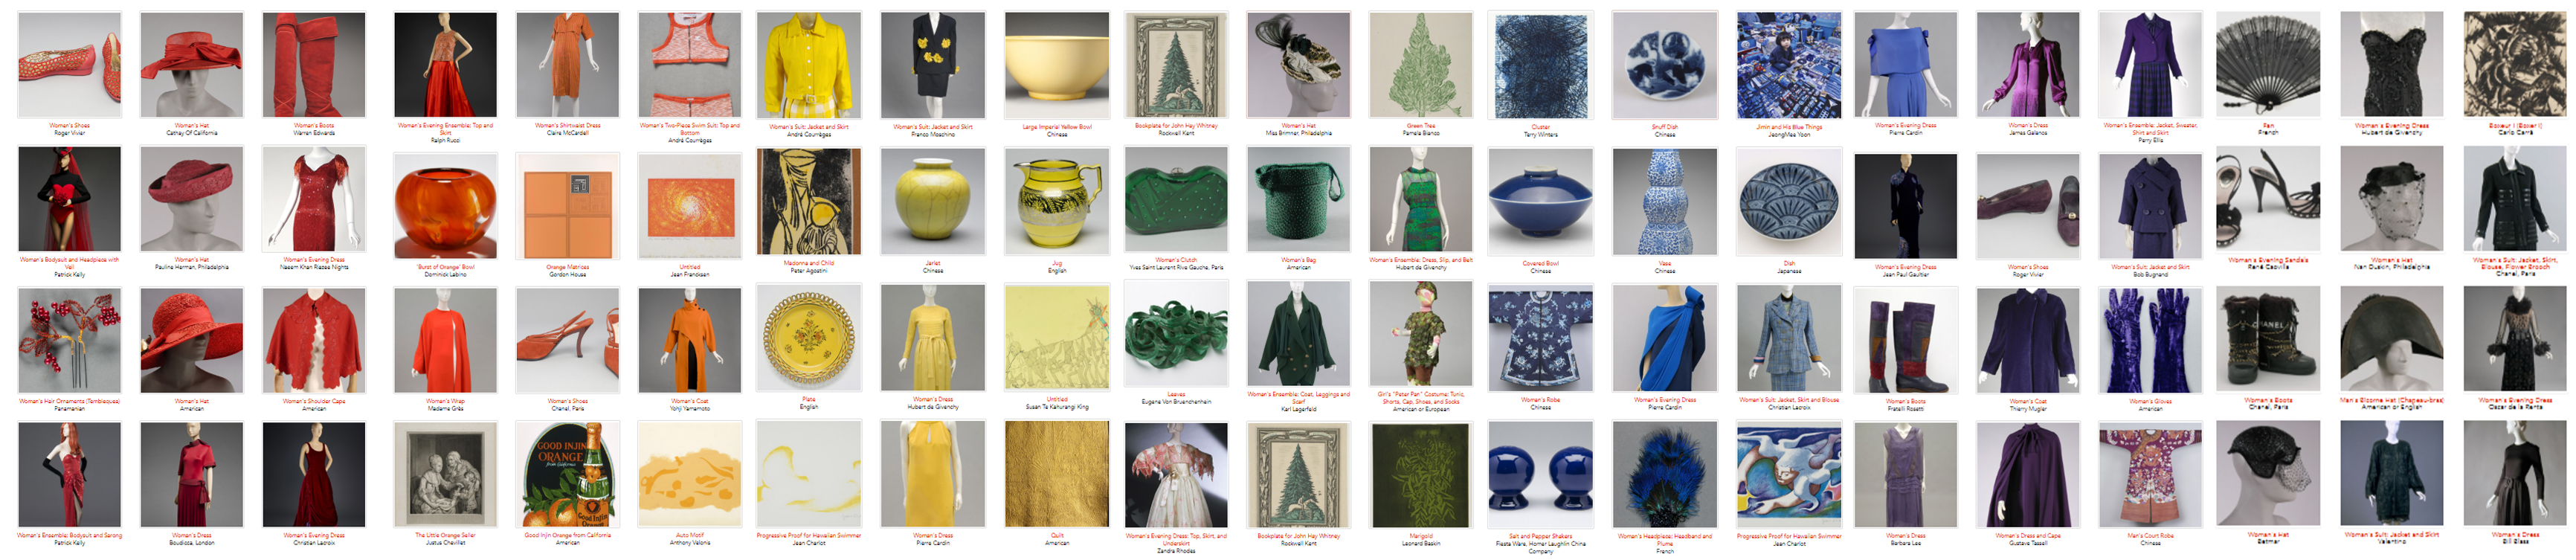 objects from PMA collections sorted by color